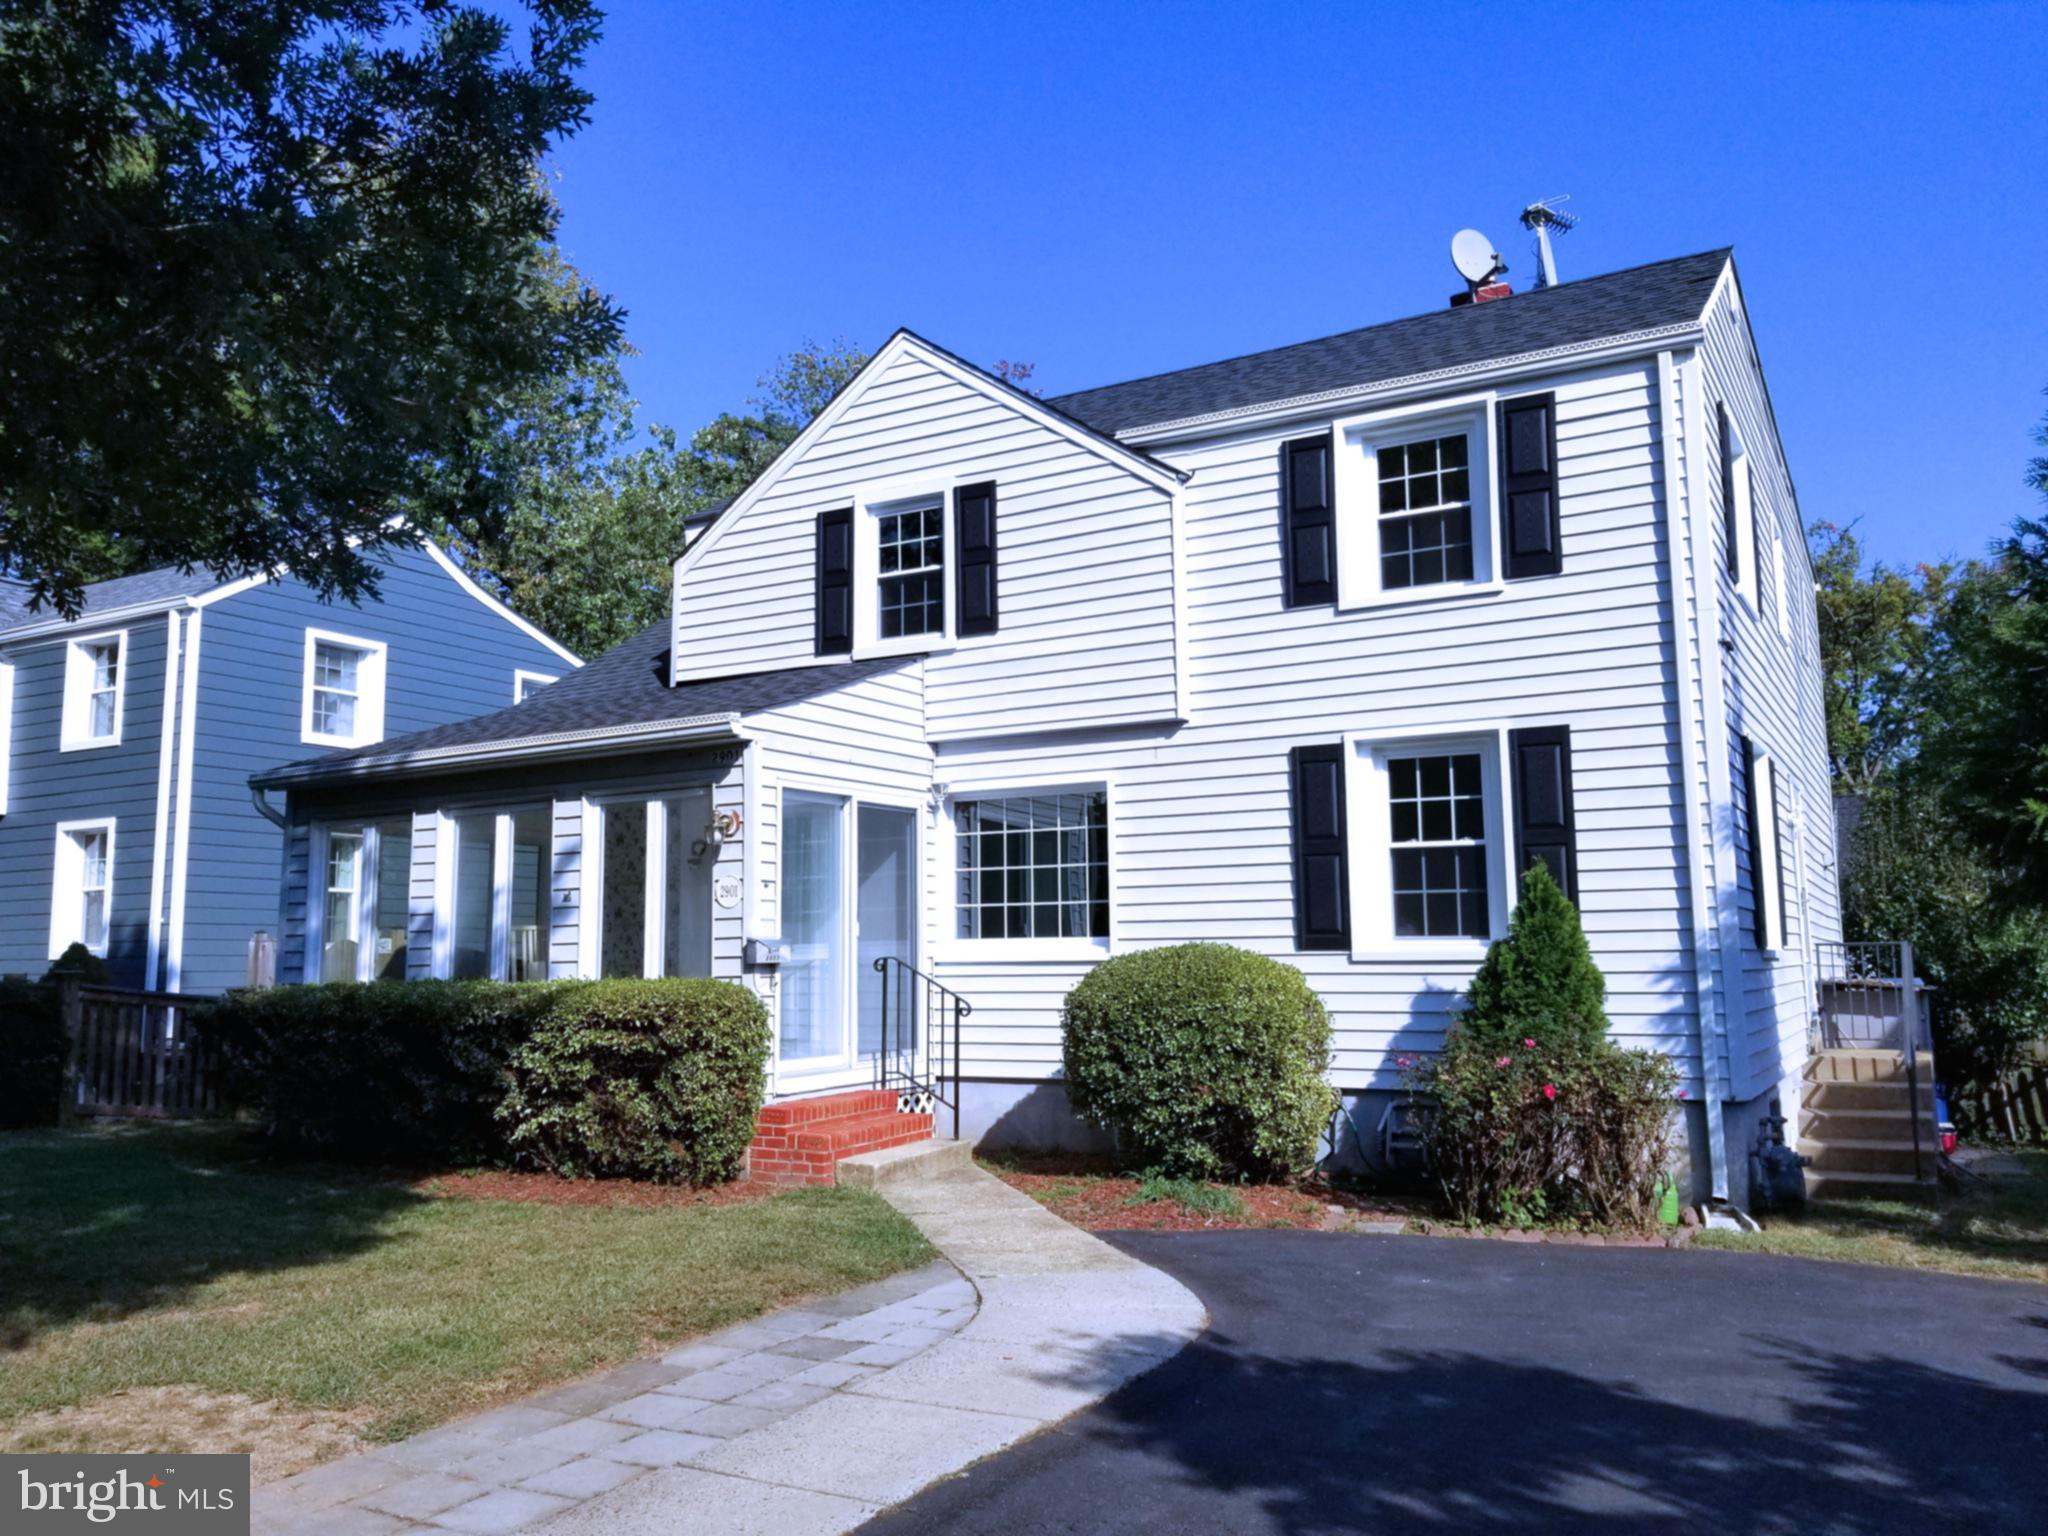 2901 CHERRY STREET, FALLS CHURCH, VA 22042